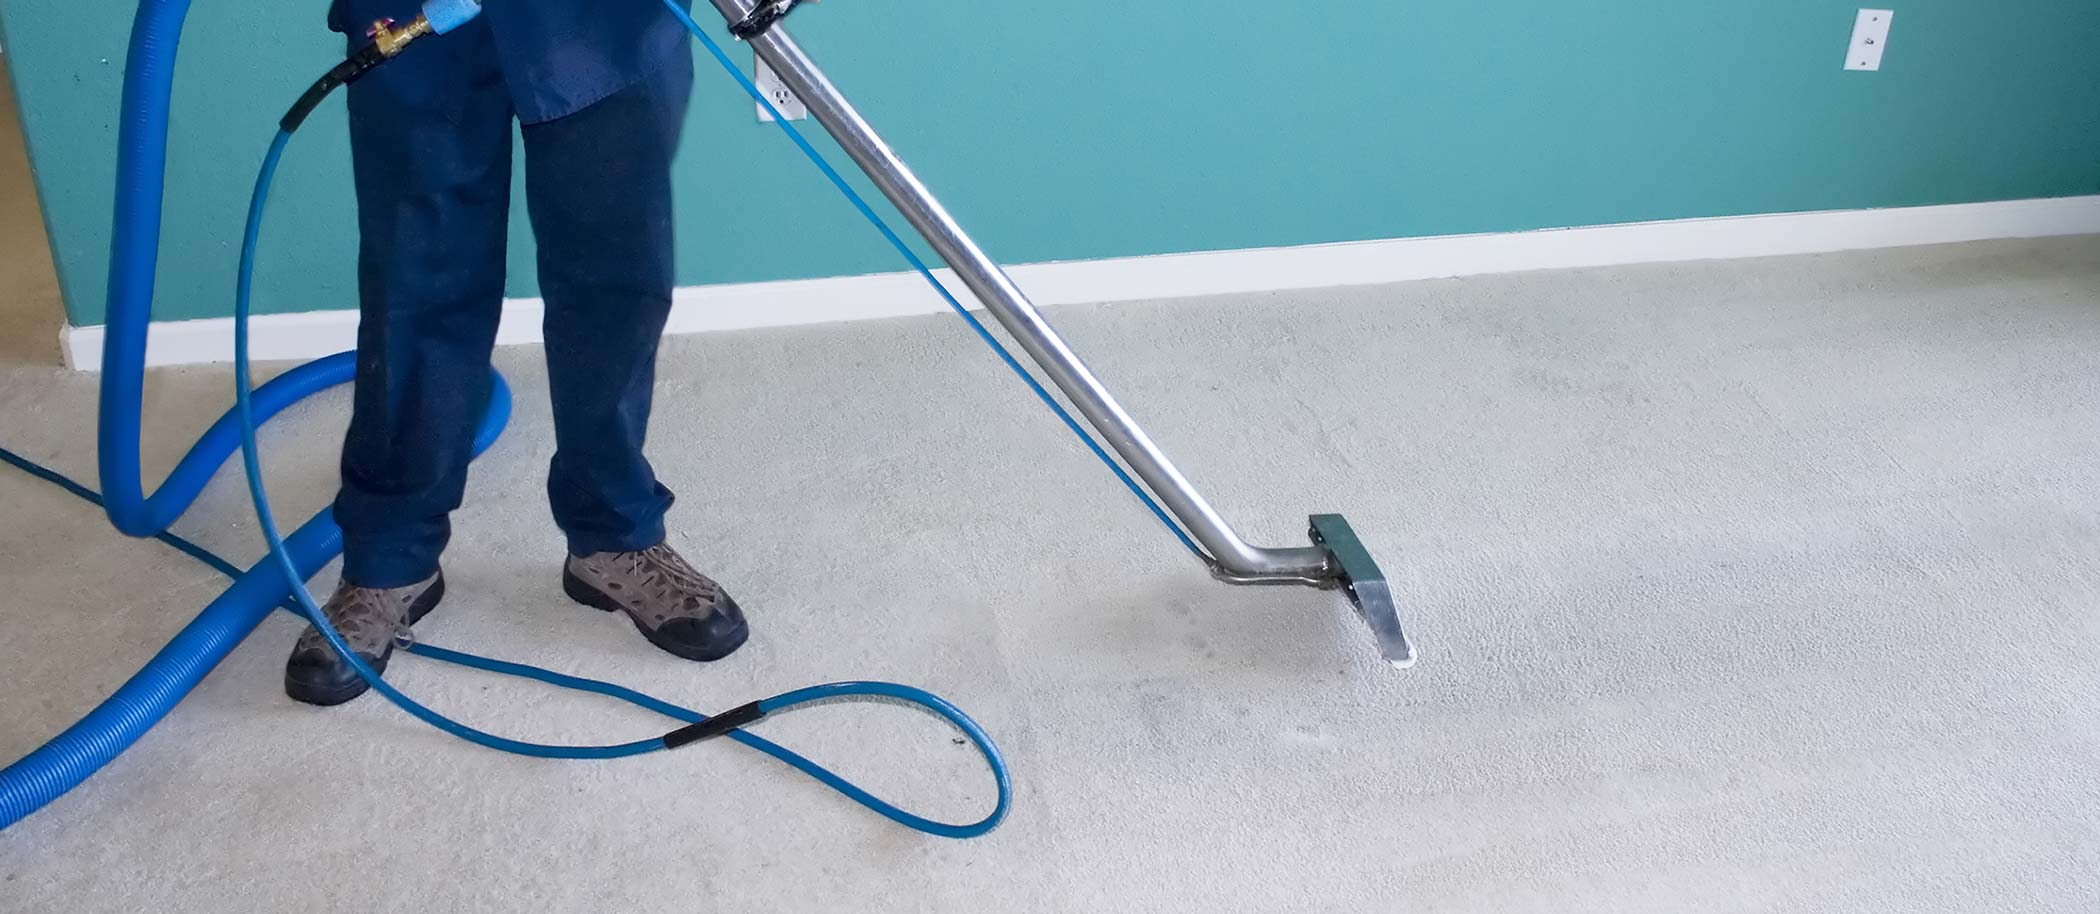 aaa-clean-commercial-carpet-cleaning-kitchener-waterloo-5